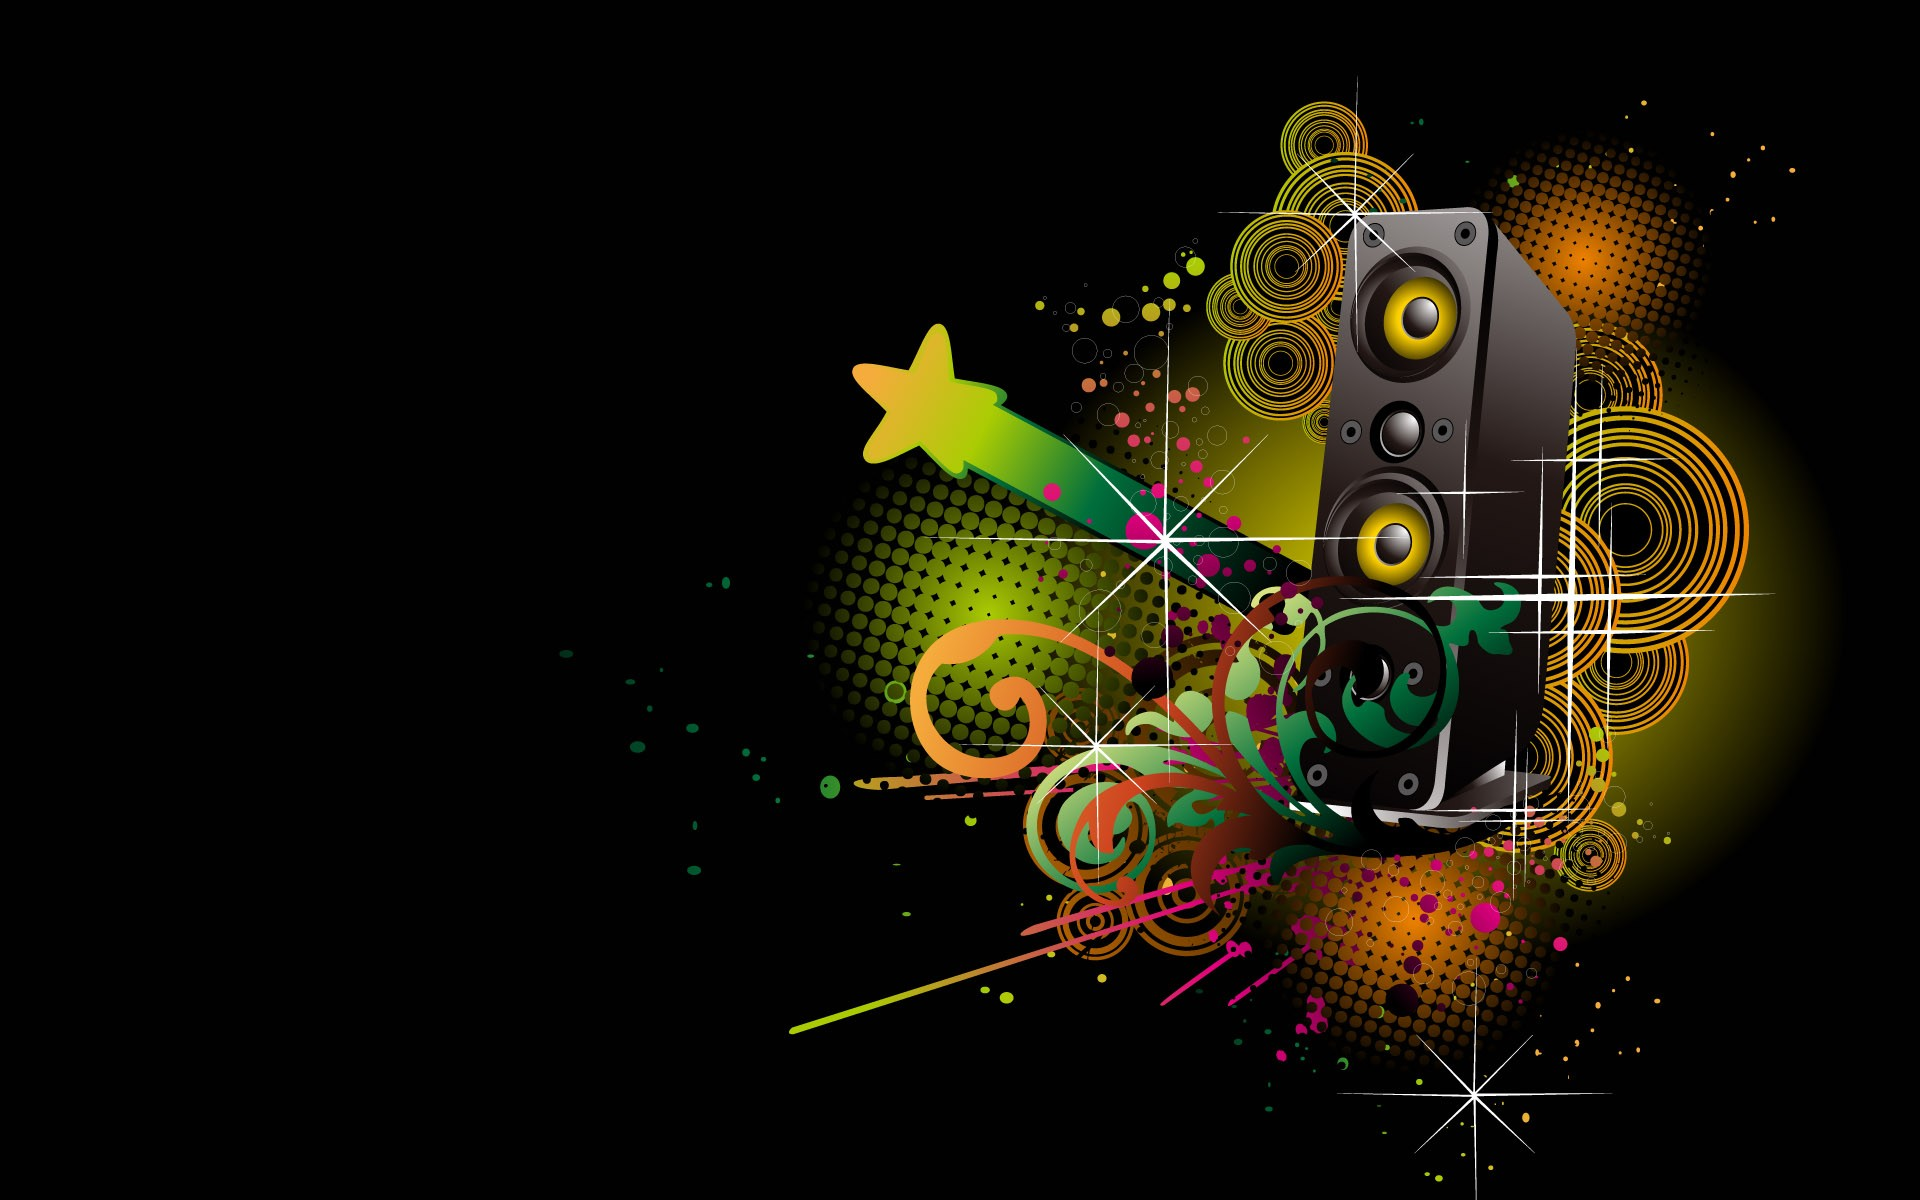 Abstract Music Wallpaper 1920x1200 Abstract Music Colorful Digital 1920x1200